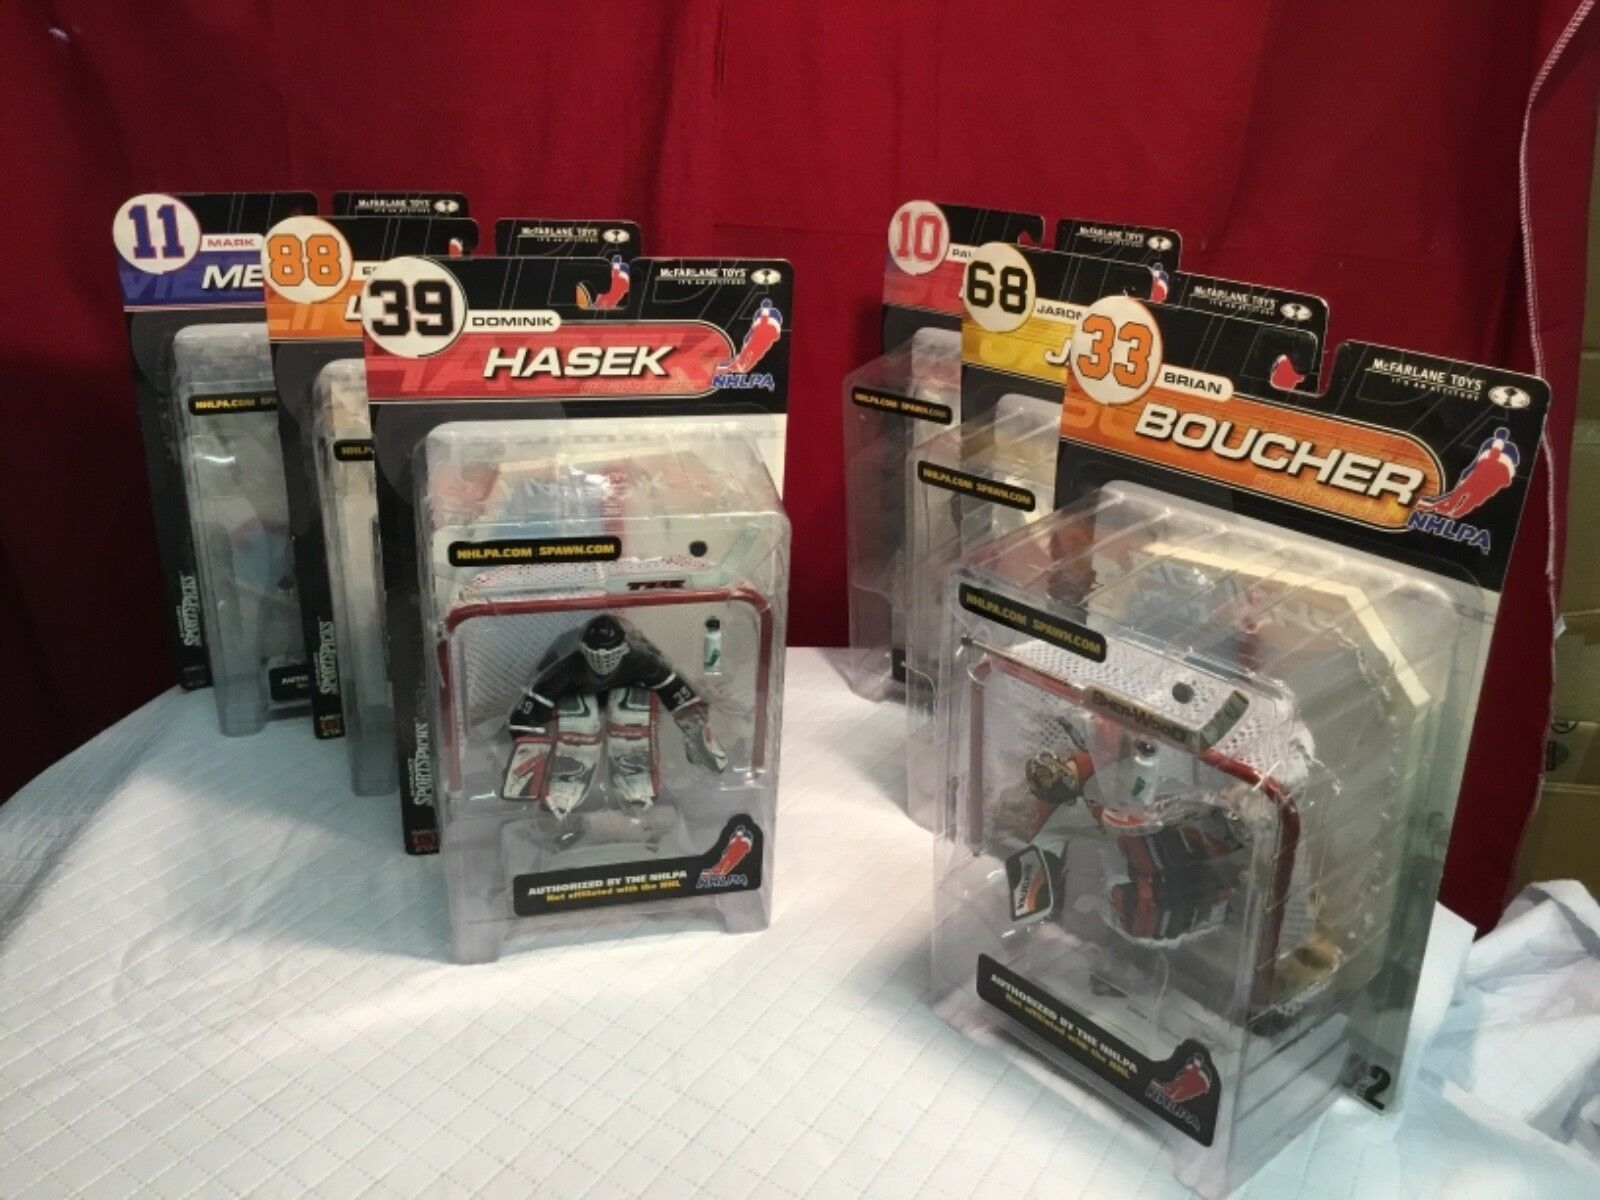 Mcfarlane toys NHLPA series 2 complete set of 6 Hasek,Messier,lindros,Jagr,Bouch